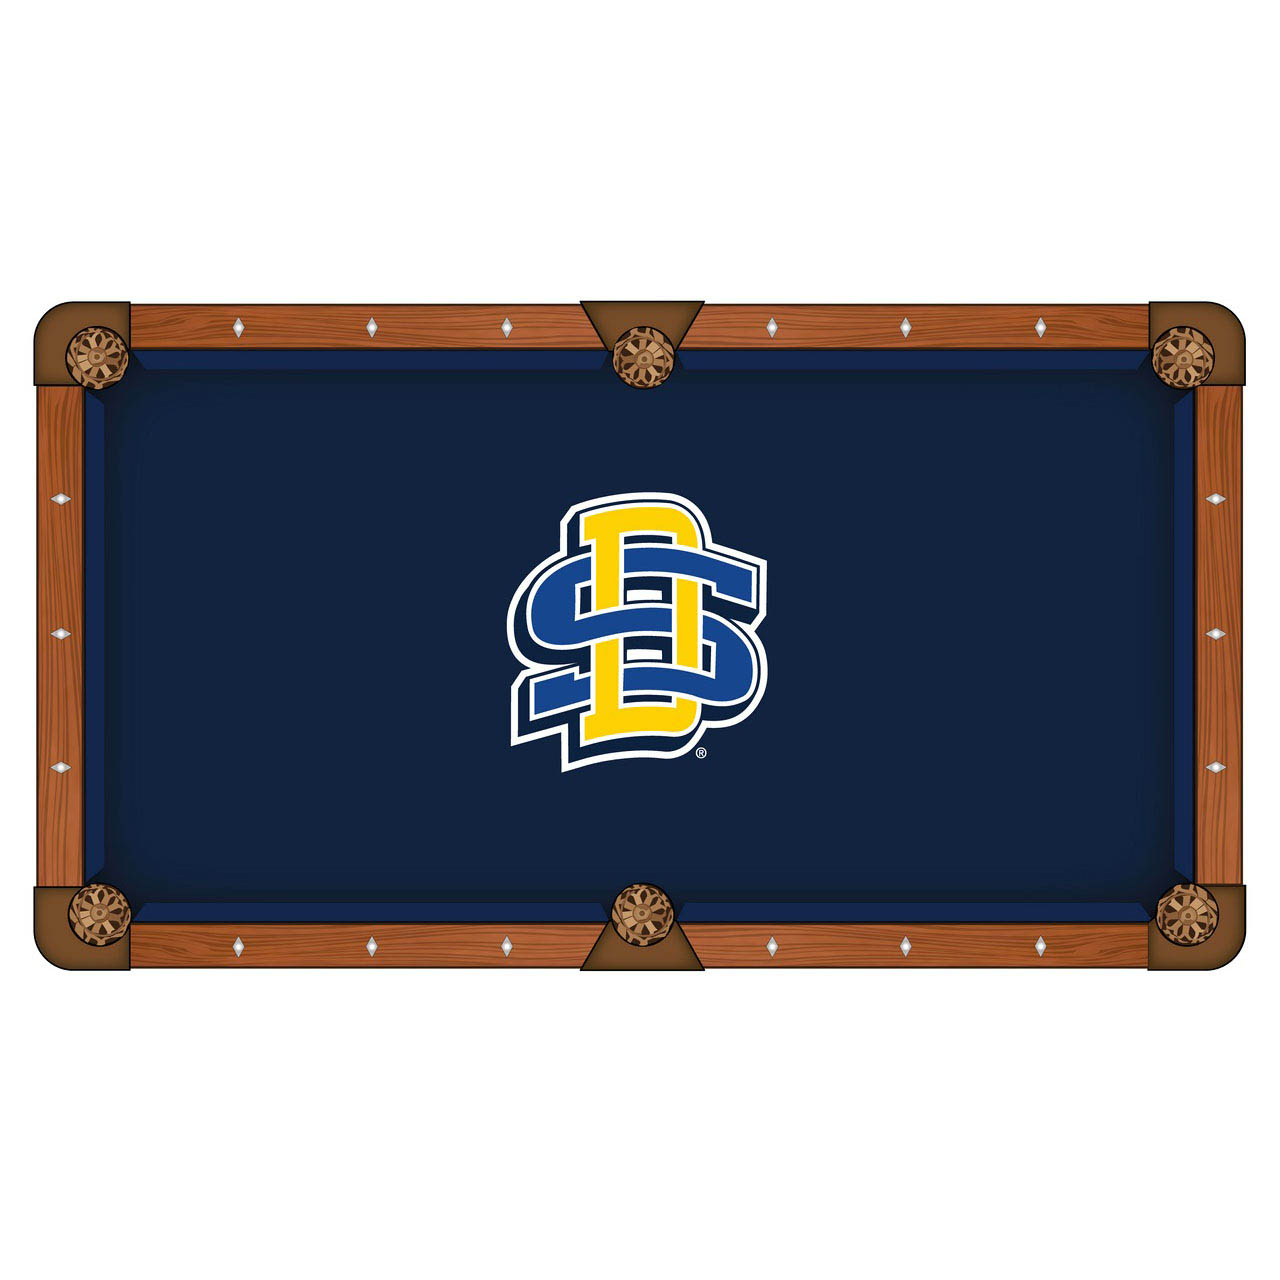 Check out the South Dakota State University Pool Table Cloth Product Photo